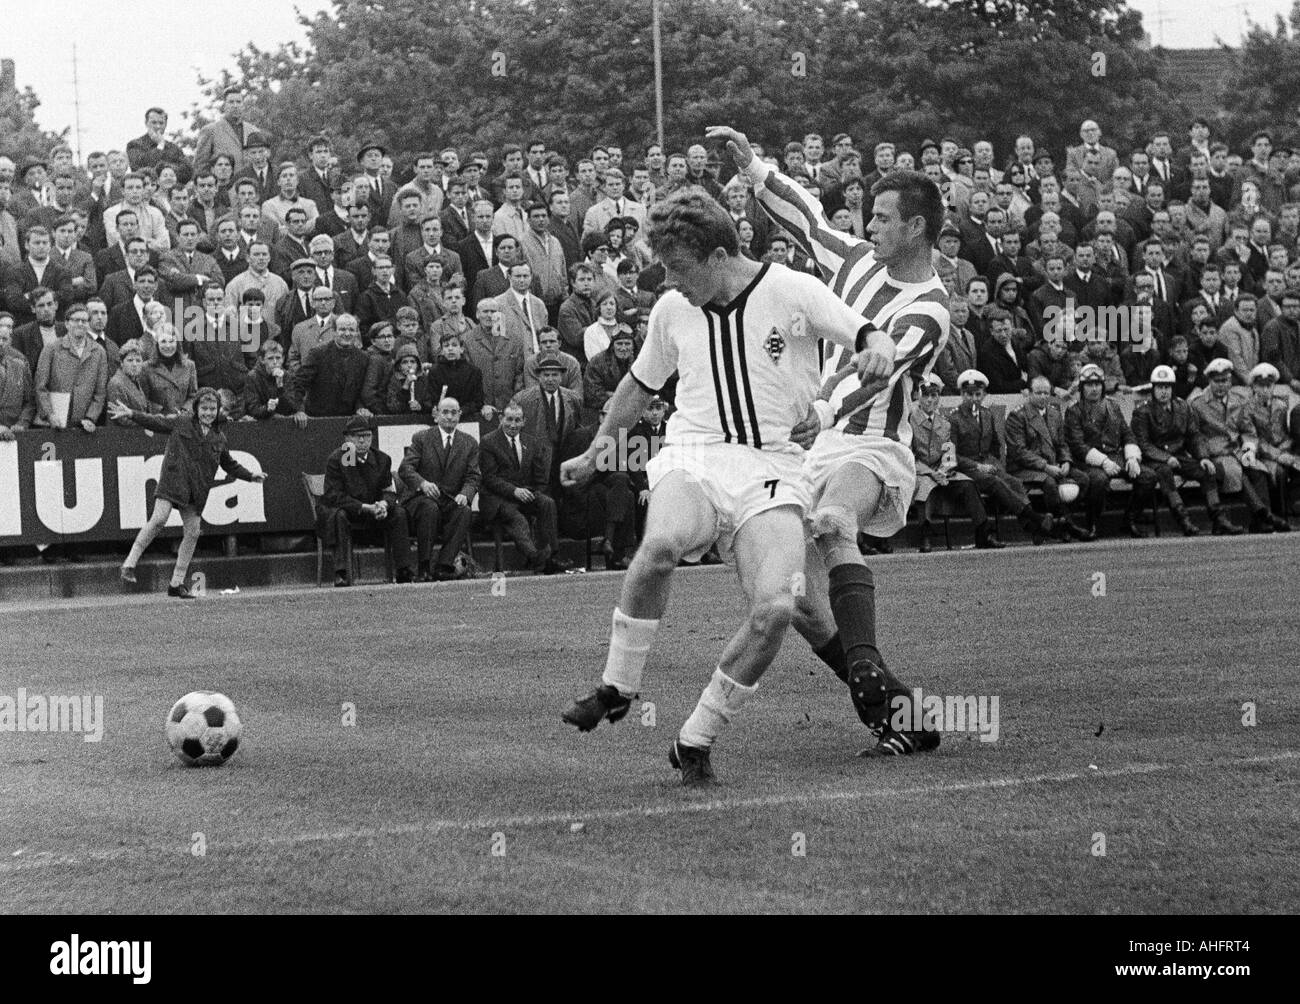 football, Bundesliga, 1967/1968, Boekelberg Stadium, Borussia Moenchengladbach versus 1. FC Cologne 1:0, scene of the match, duel between Herbert Wimmer (Gladbach) left and Matthias Hemmersbach (Koeln) - Stock Image